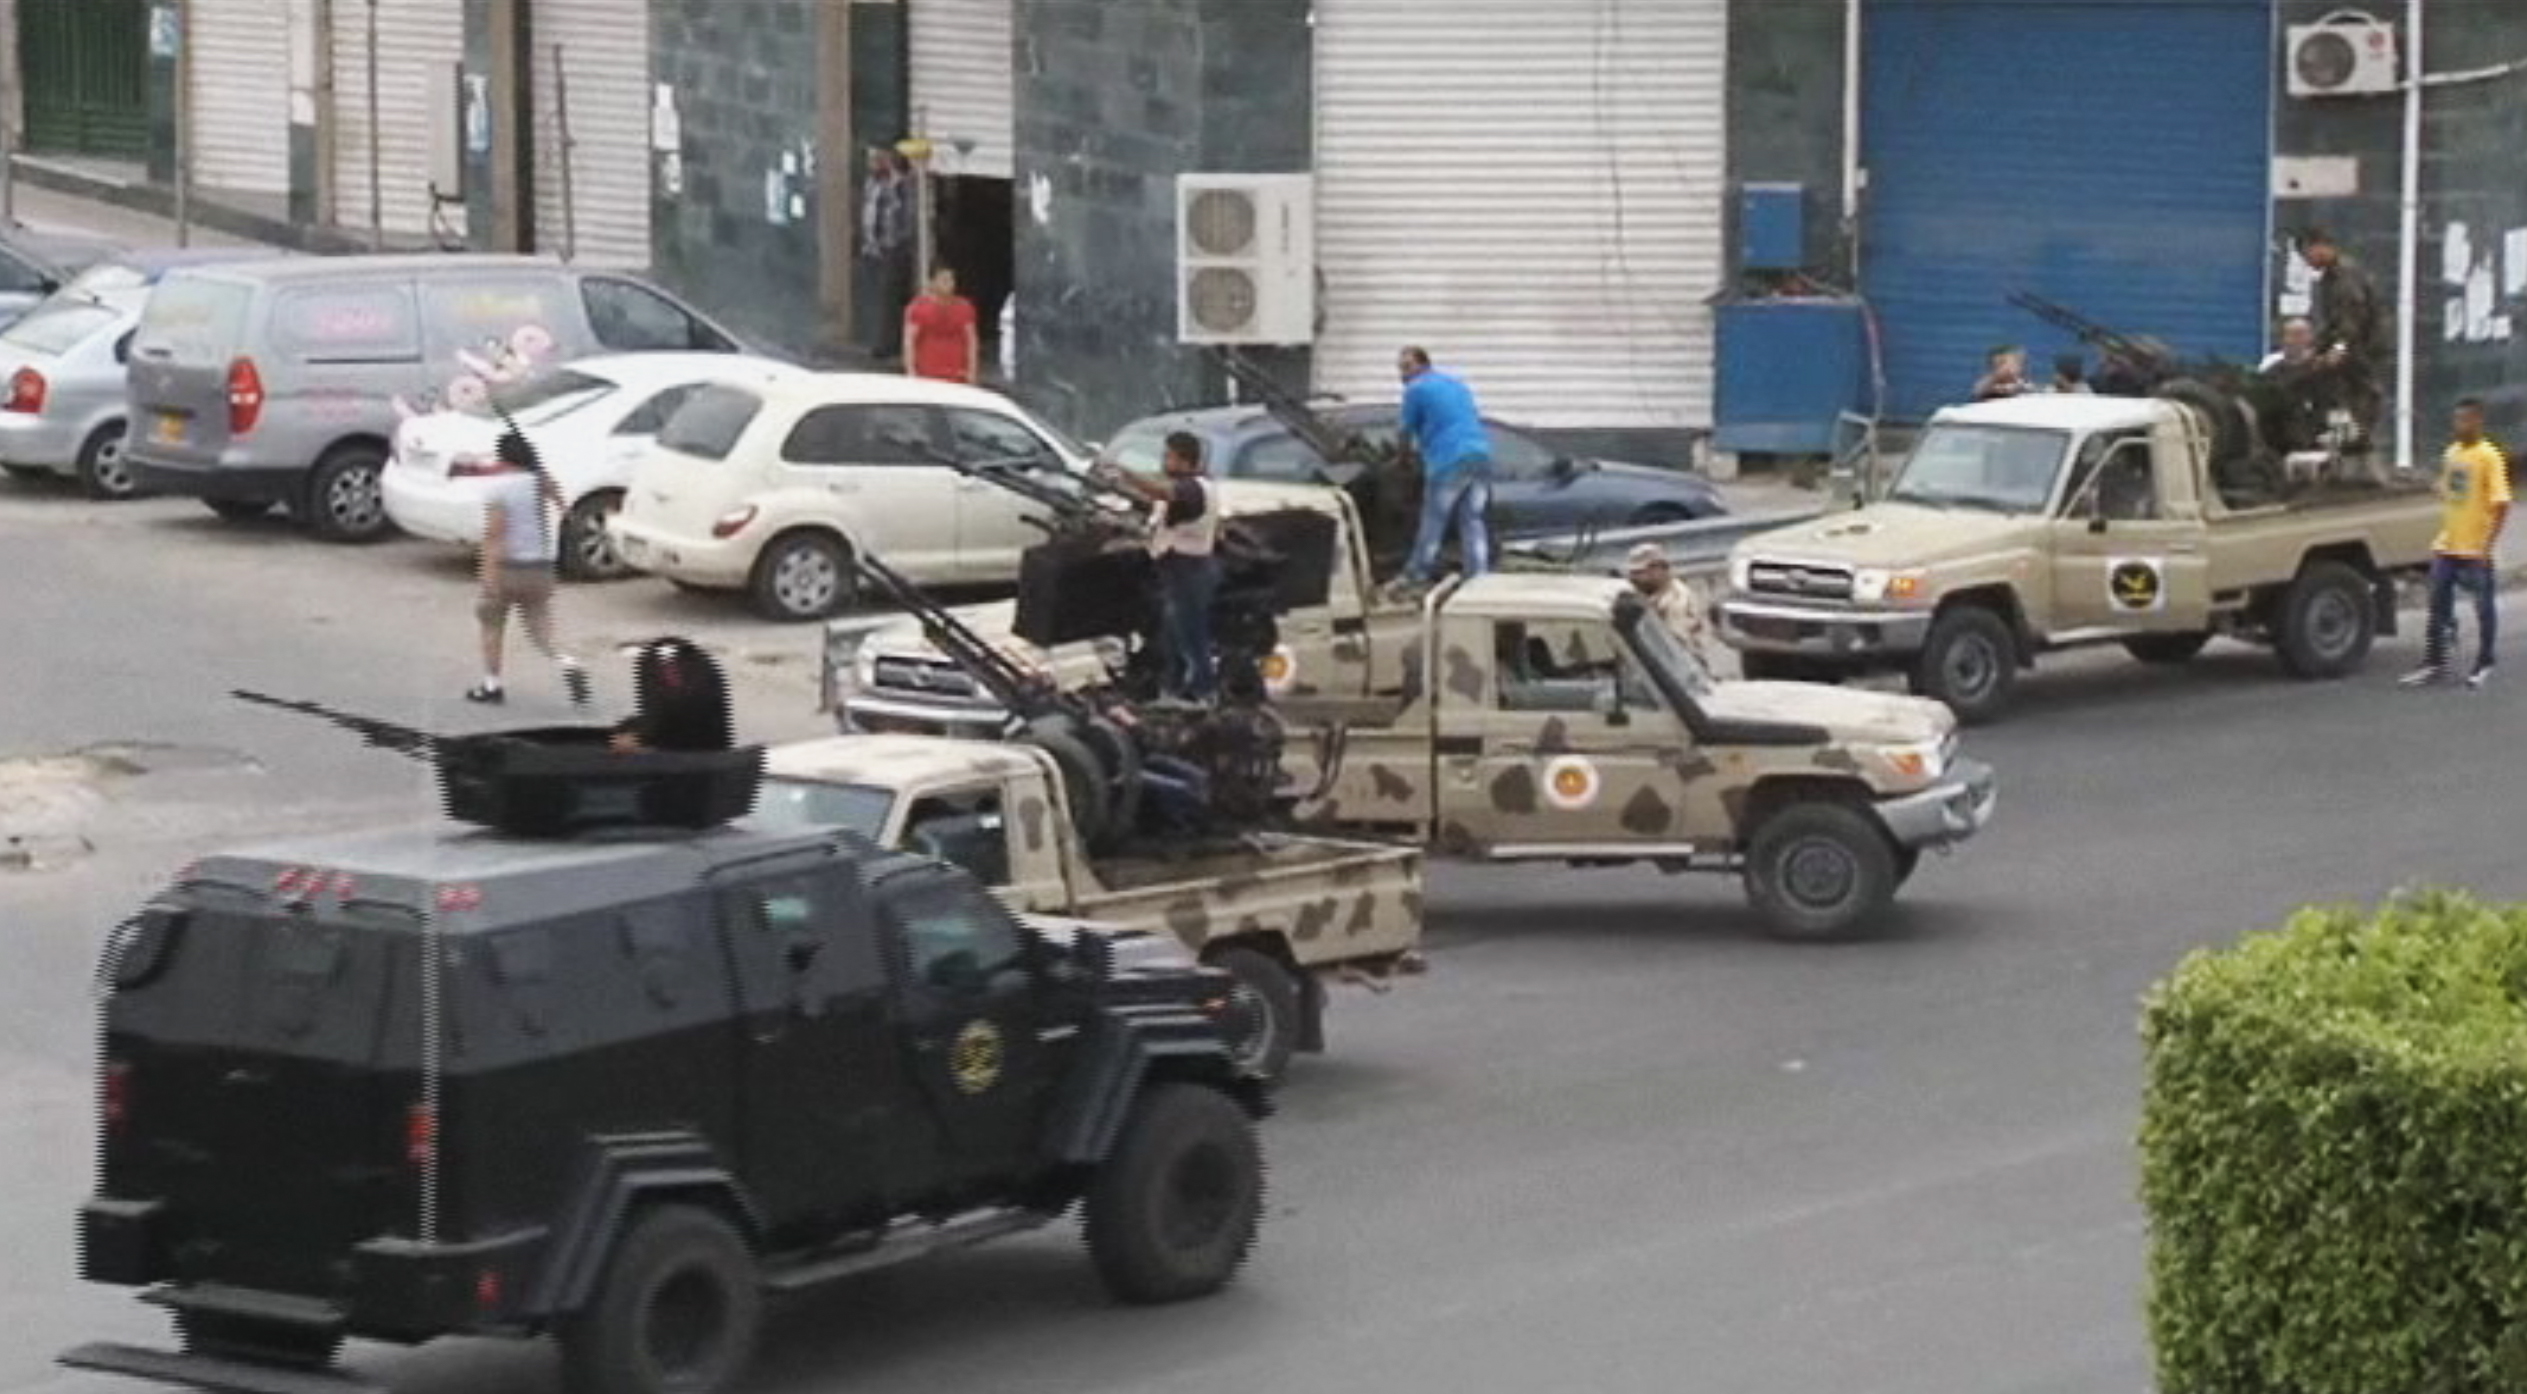 Joint security forces on vehicles with heavy artillery stand guard on the entrance road to Libya's parliament area after troops of General Khalifa Hifter targeted Islamist lawmakers and officials at the parliament in Tripoli on Sunday, May 18, 2014.